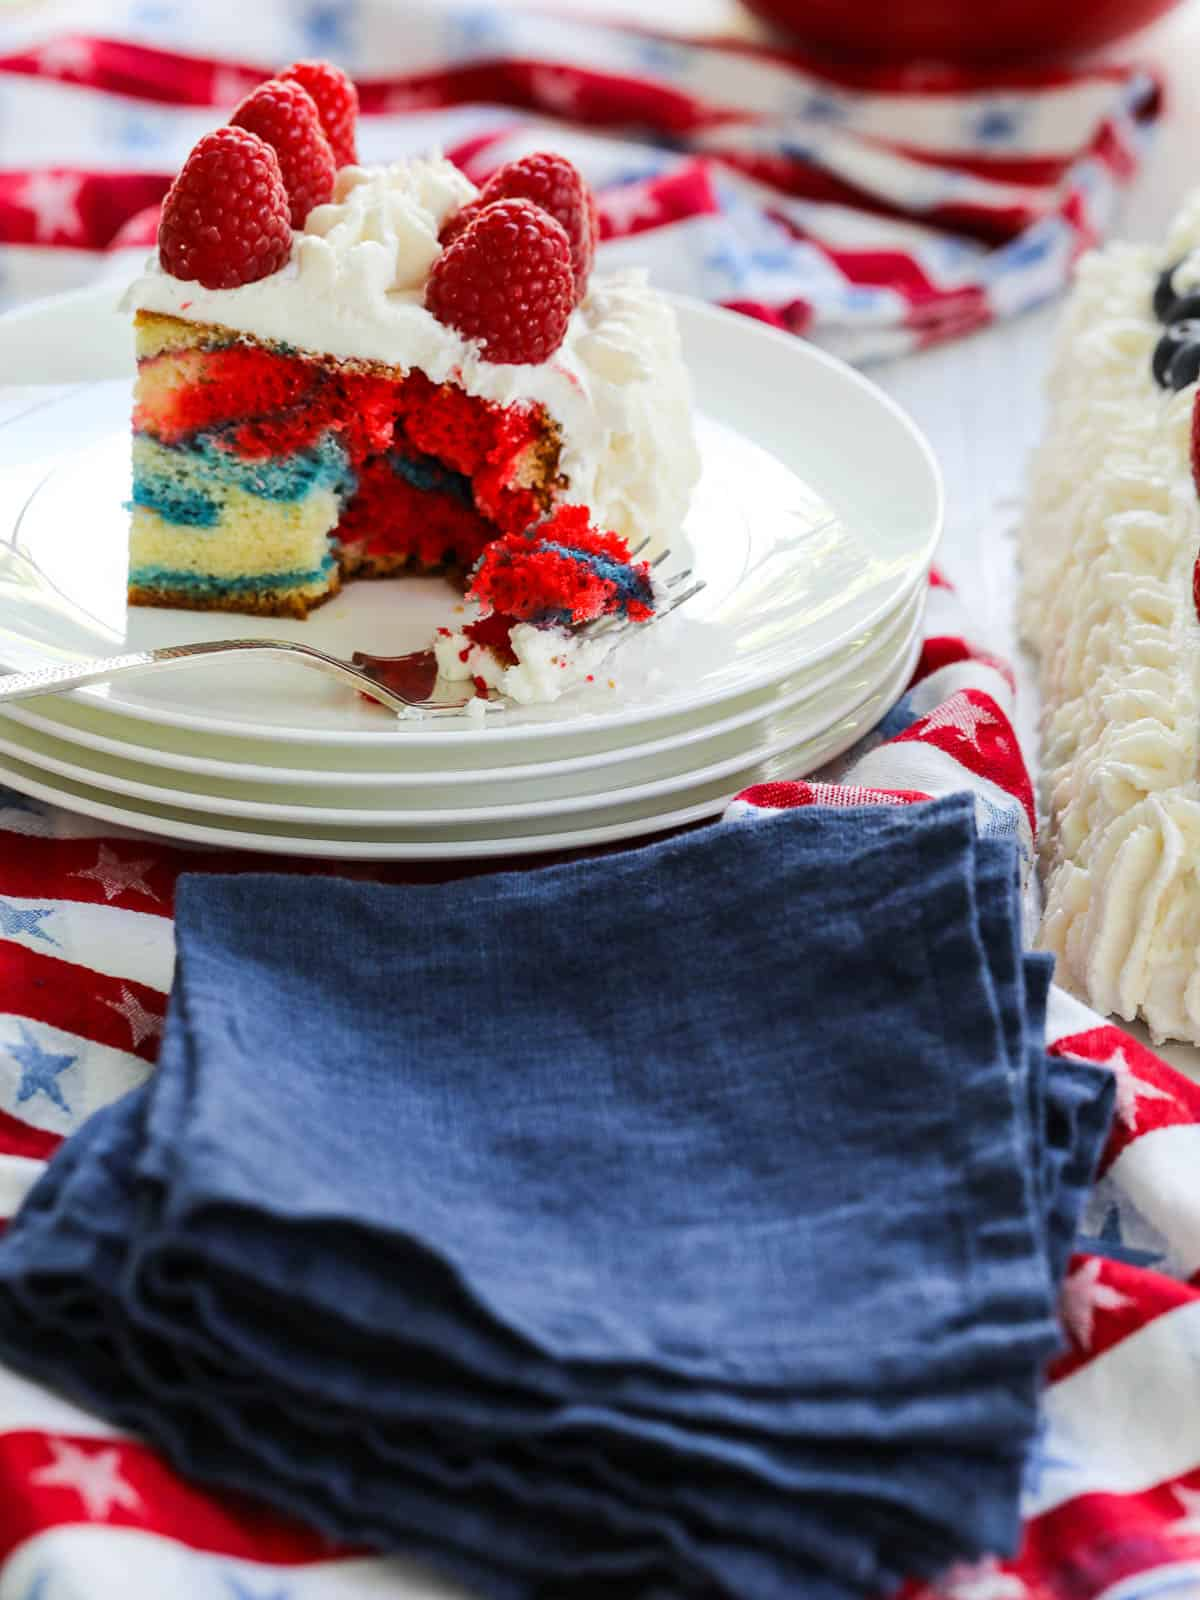 One slice of red white and blue marbled cake decorated with white frosting and raspberries.